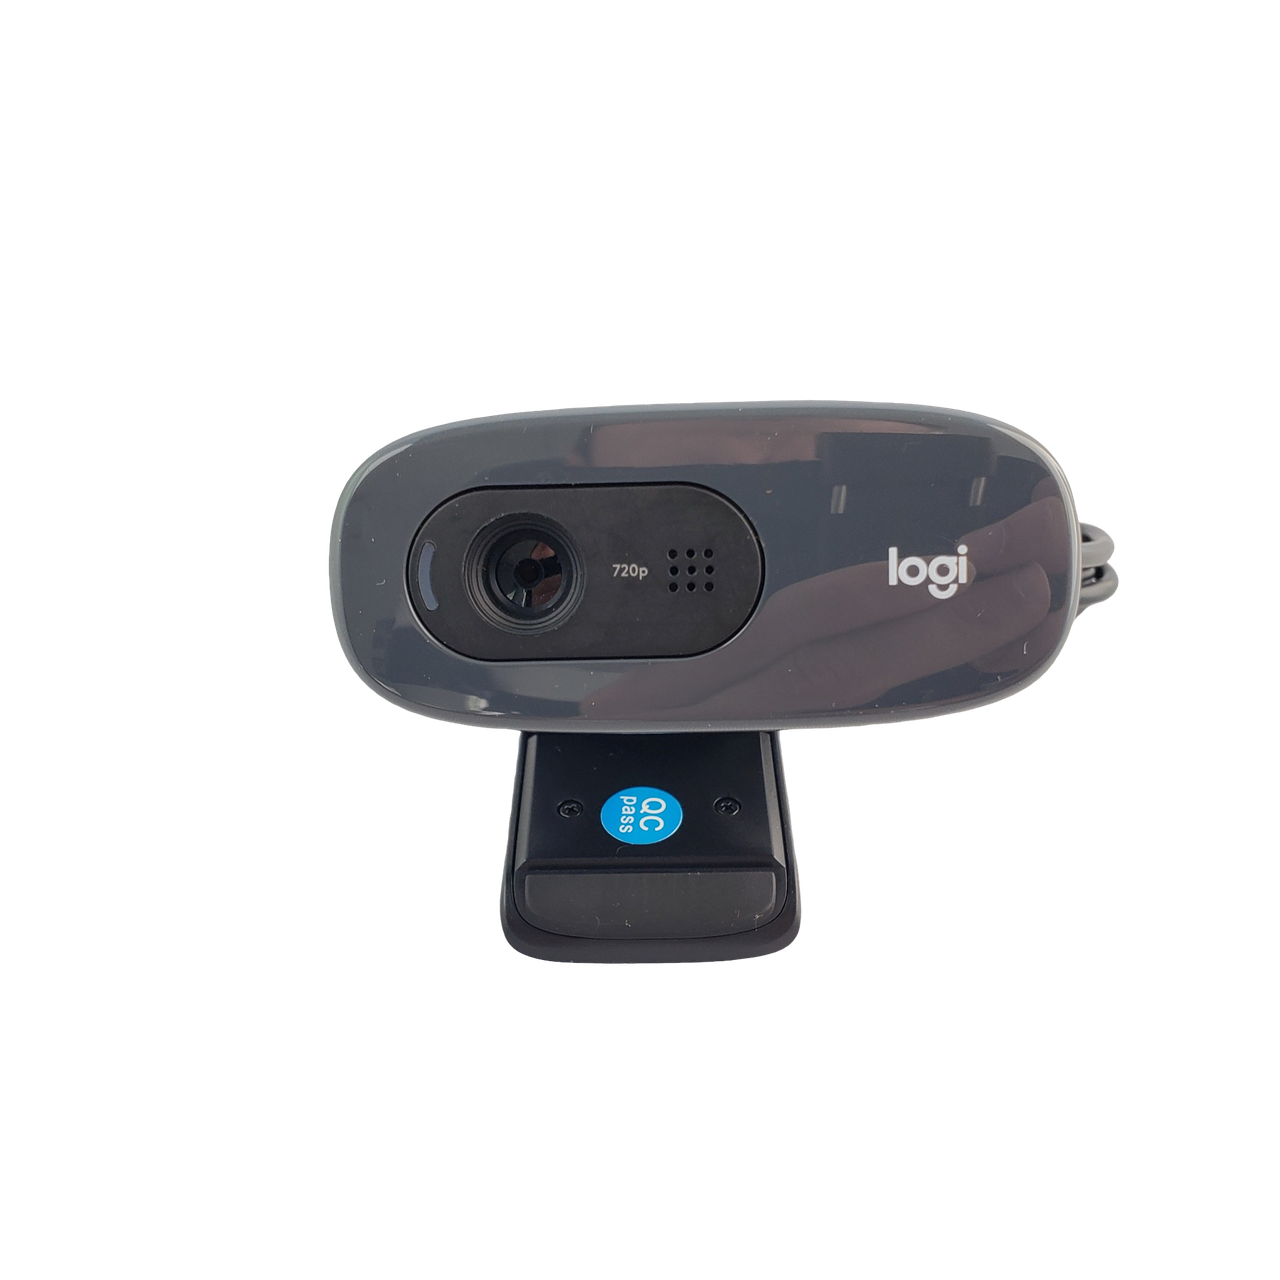 Веб-камера Logitech C270 HD Webcam Simple 720p video calls Black Уценка